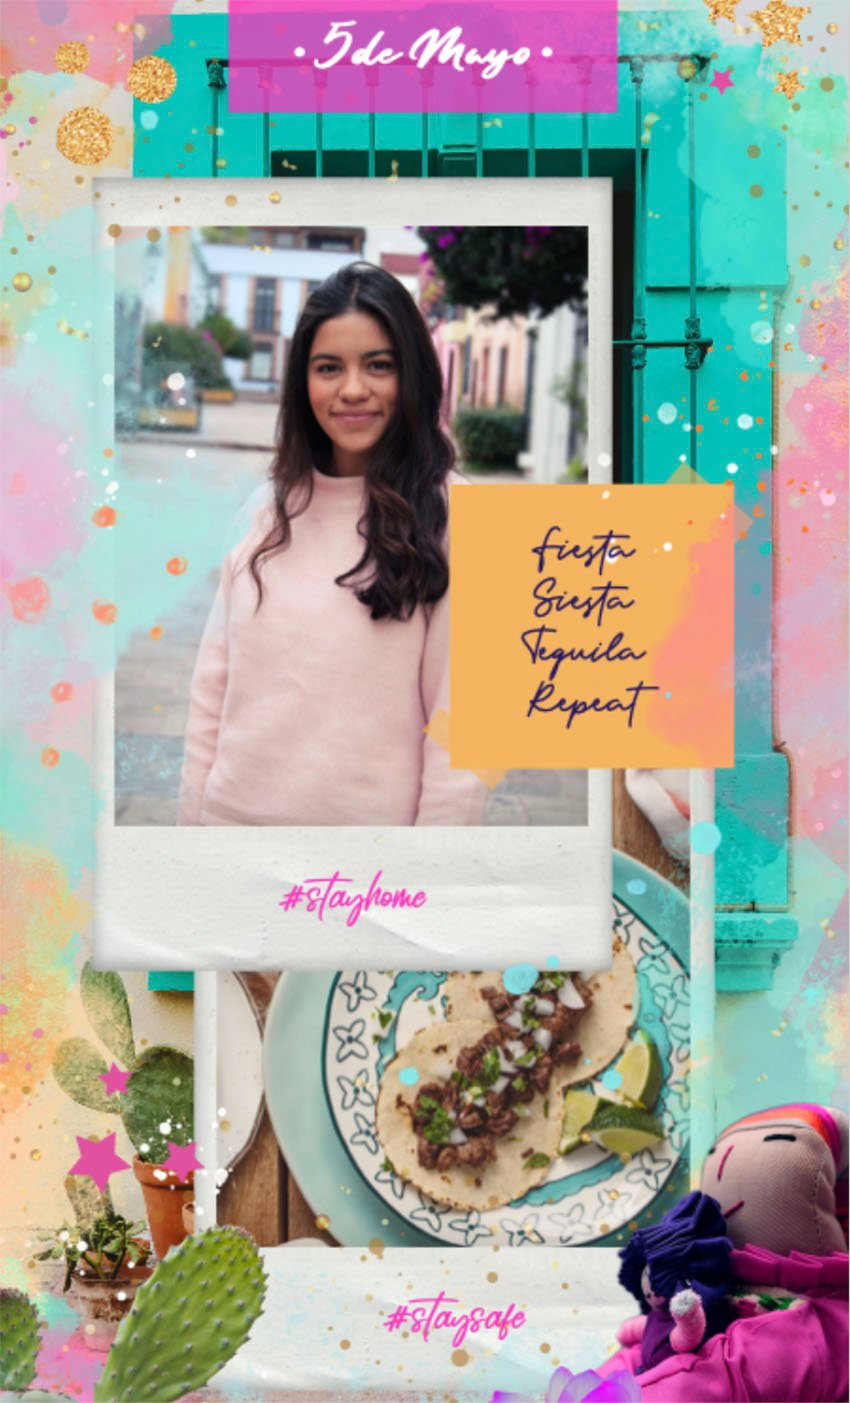 Free Instagram Story Template with 5 de Mayo Theme